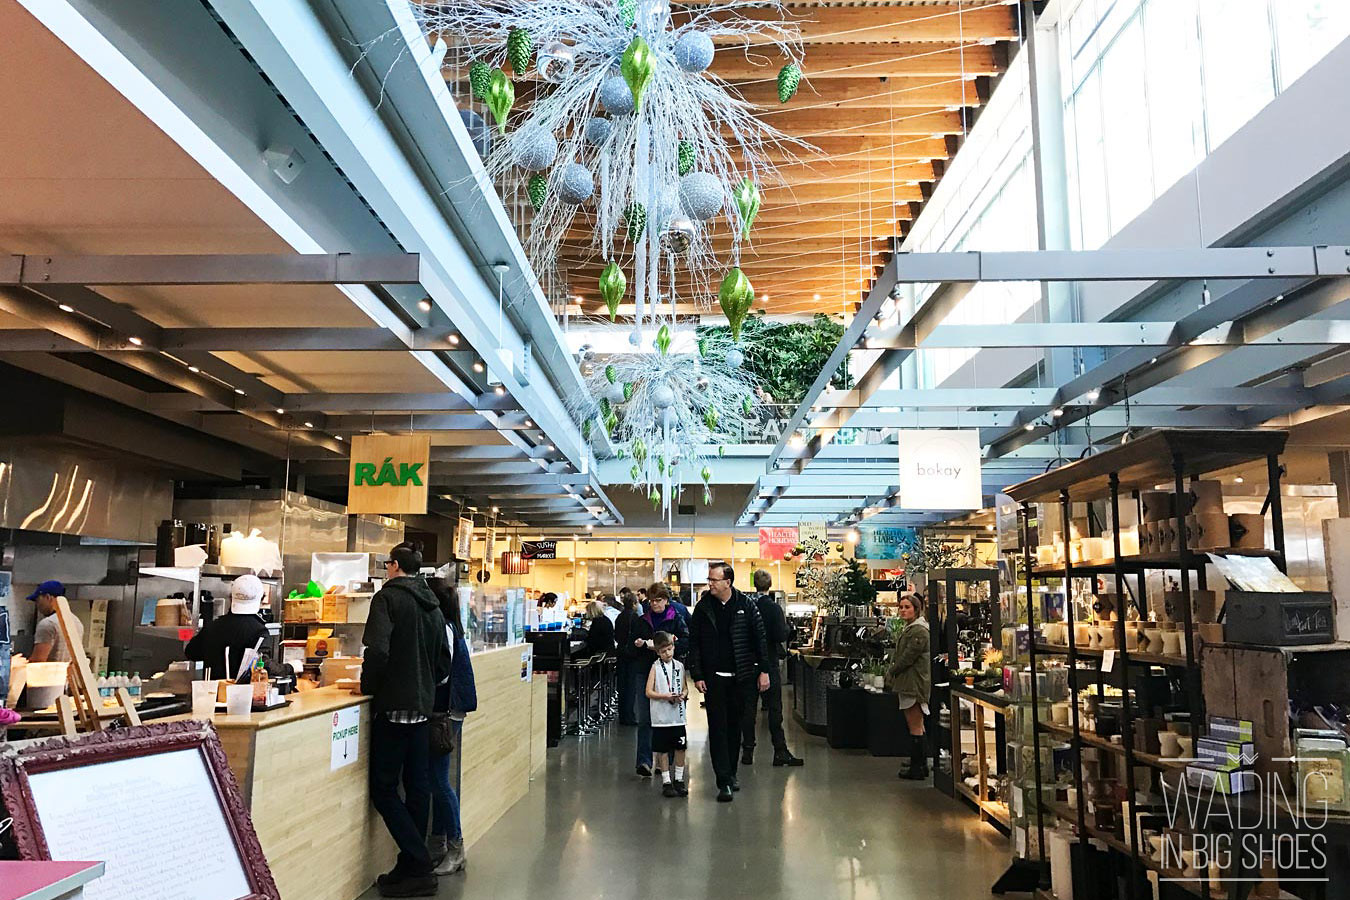 Food Lover's Dream: Explore Grand Rapids' Downtown Market - Wading in Big Shoes